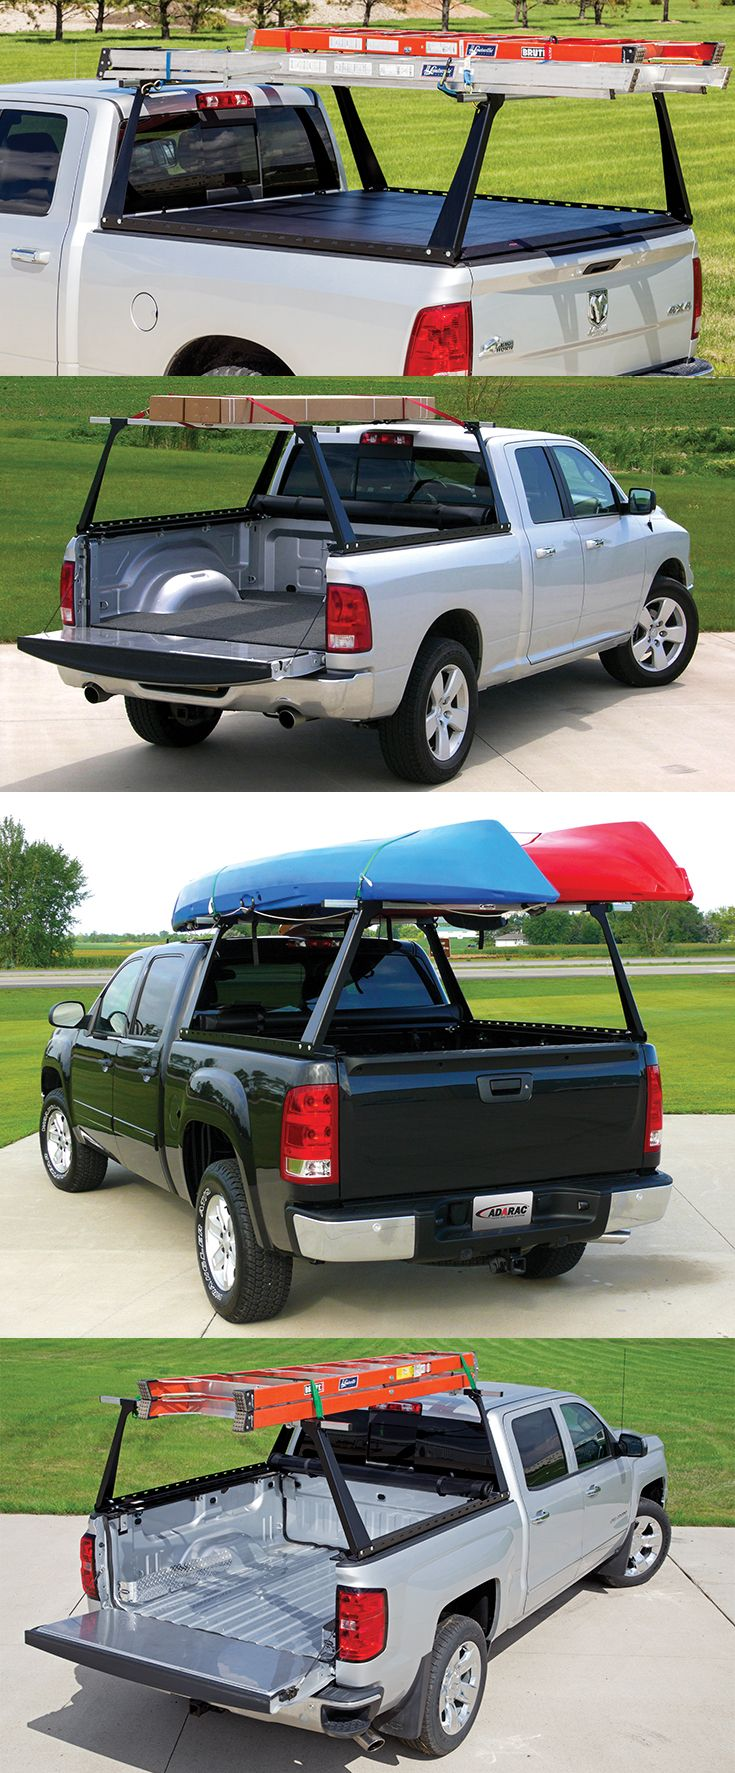 The ADARAC™ Truck Bed Rack System is an adjustable and